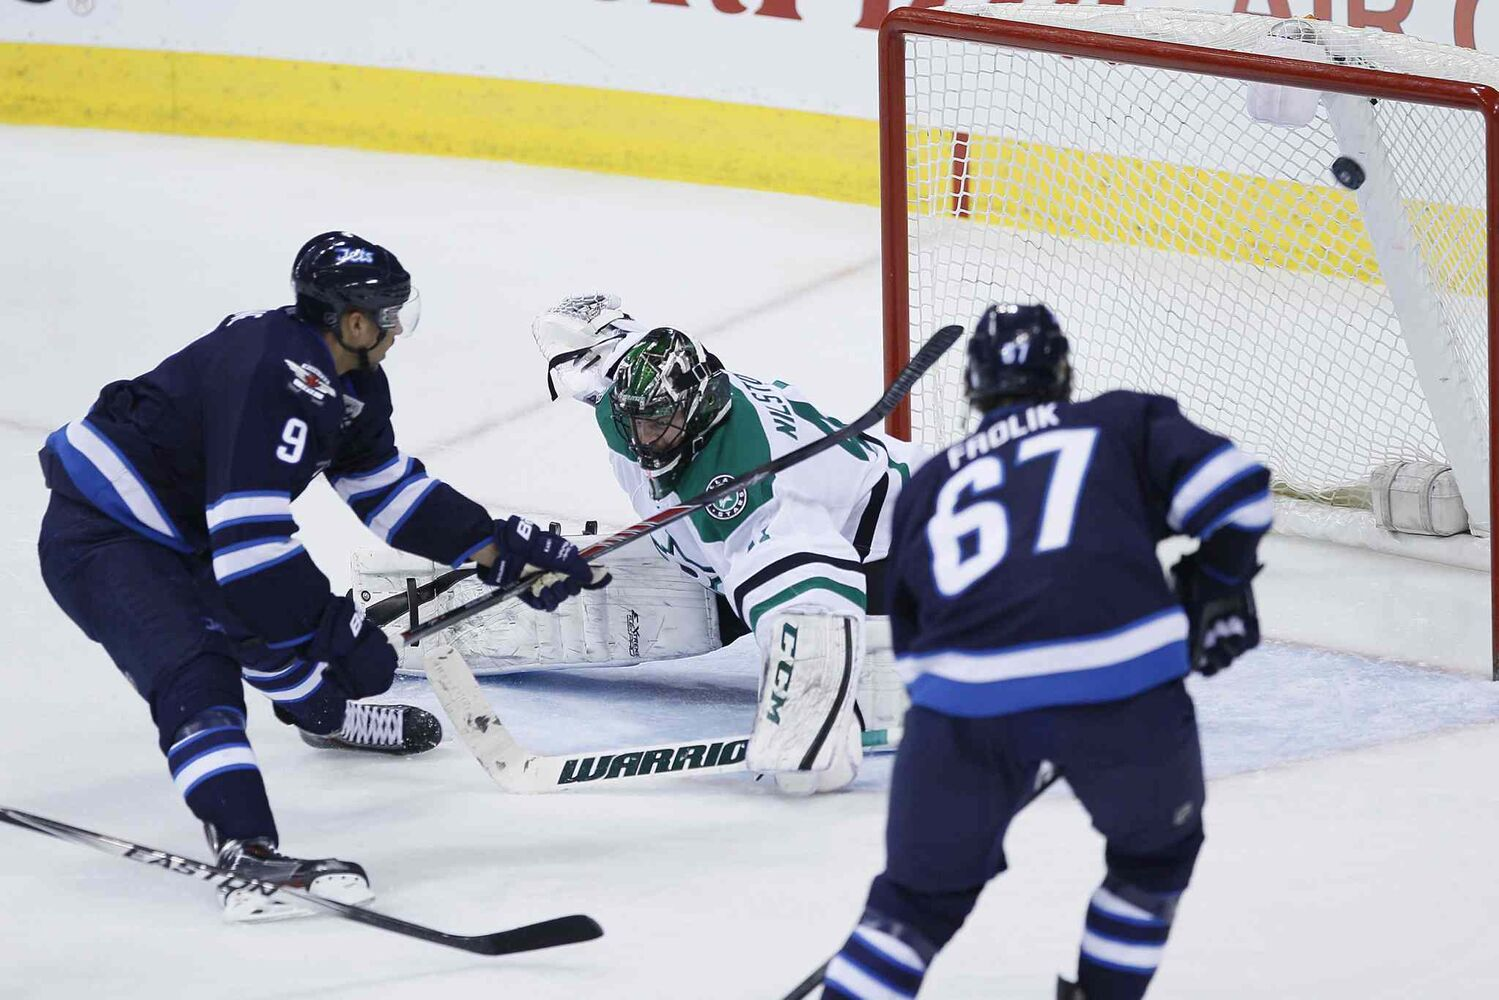 Jets forward Evander Kane snaps a slump as he scores on Stars goaltender Cristopher Nilstorp as Michael Frolik looks on during the third period.